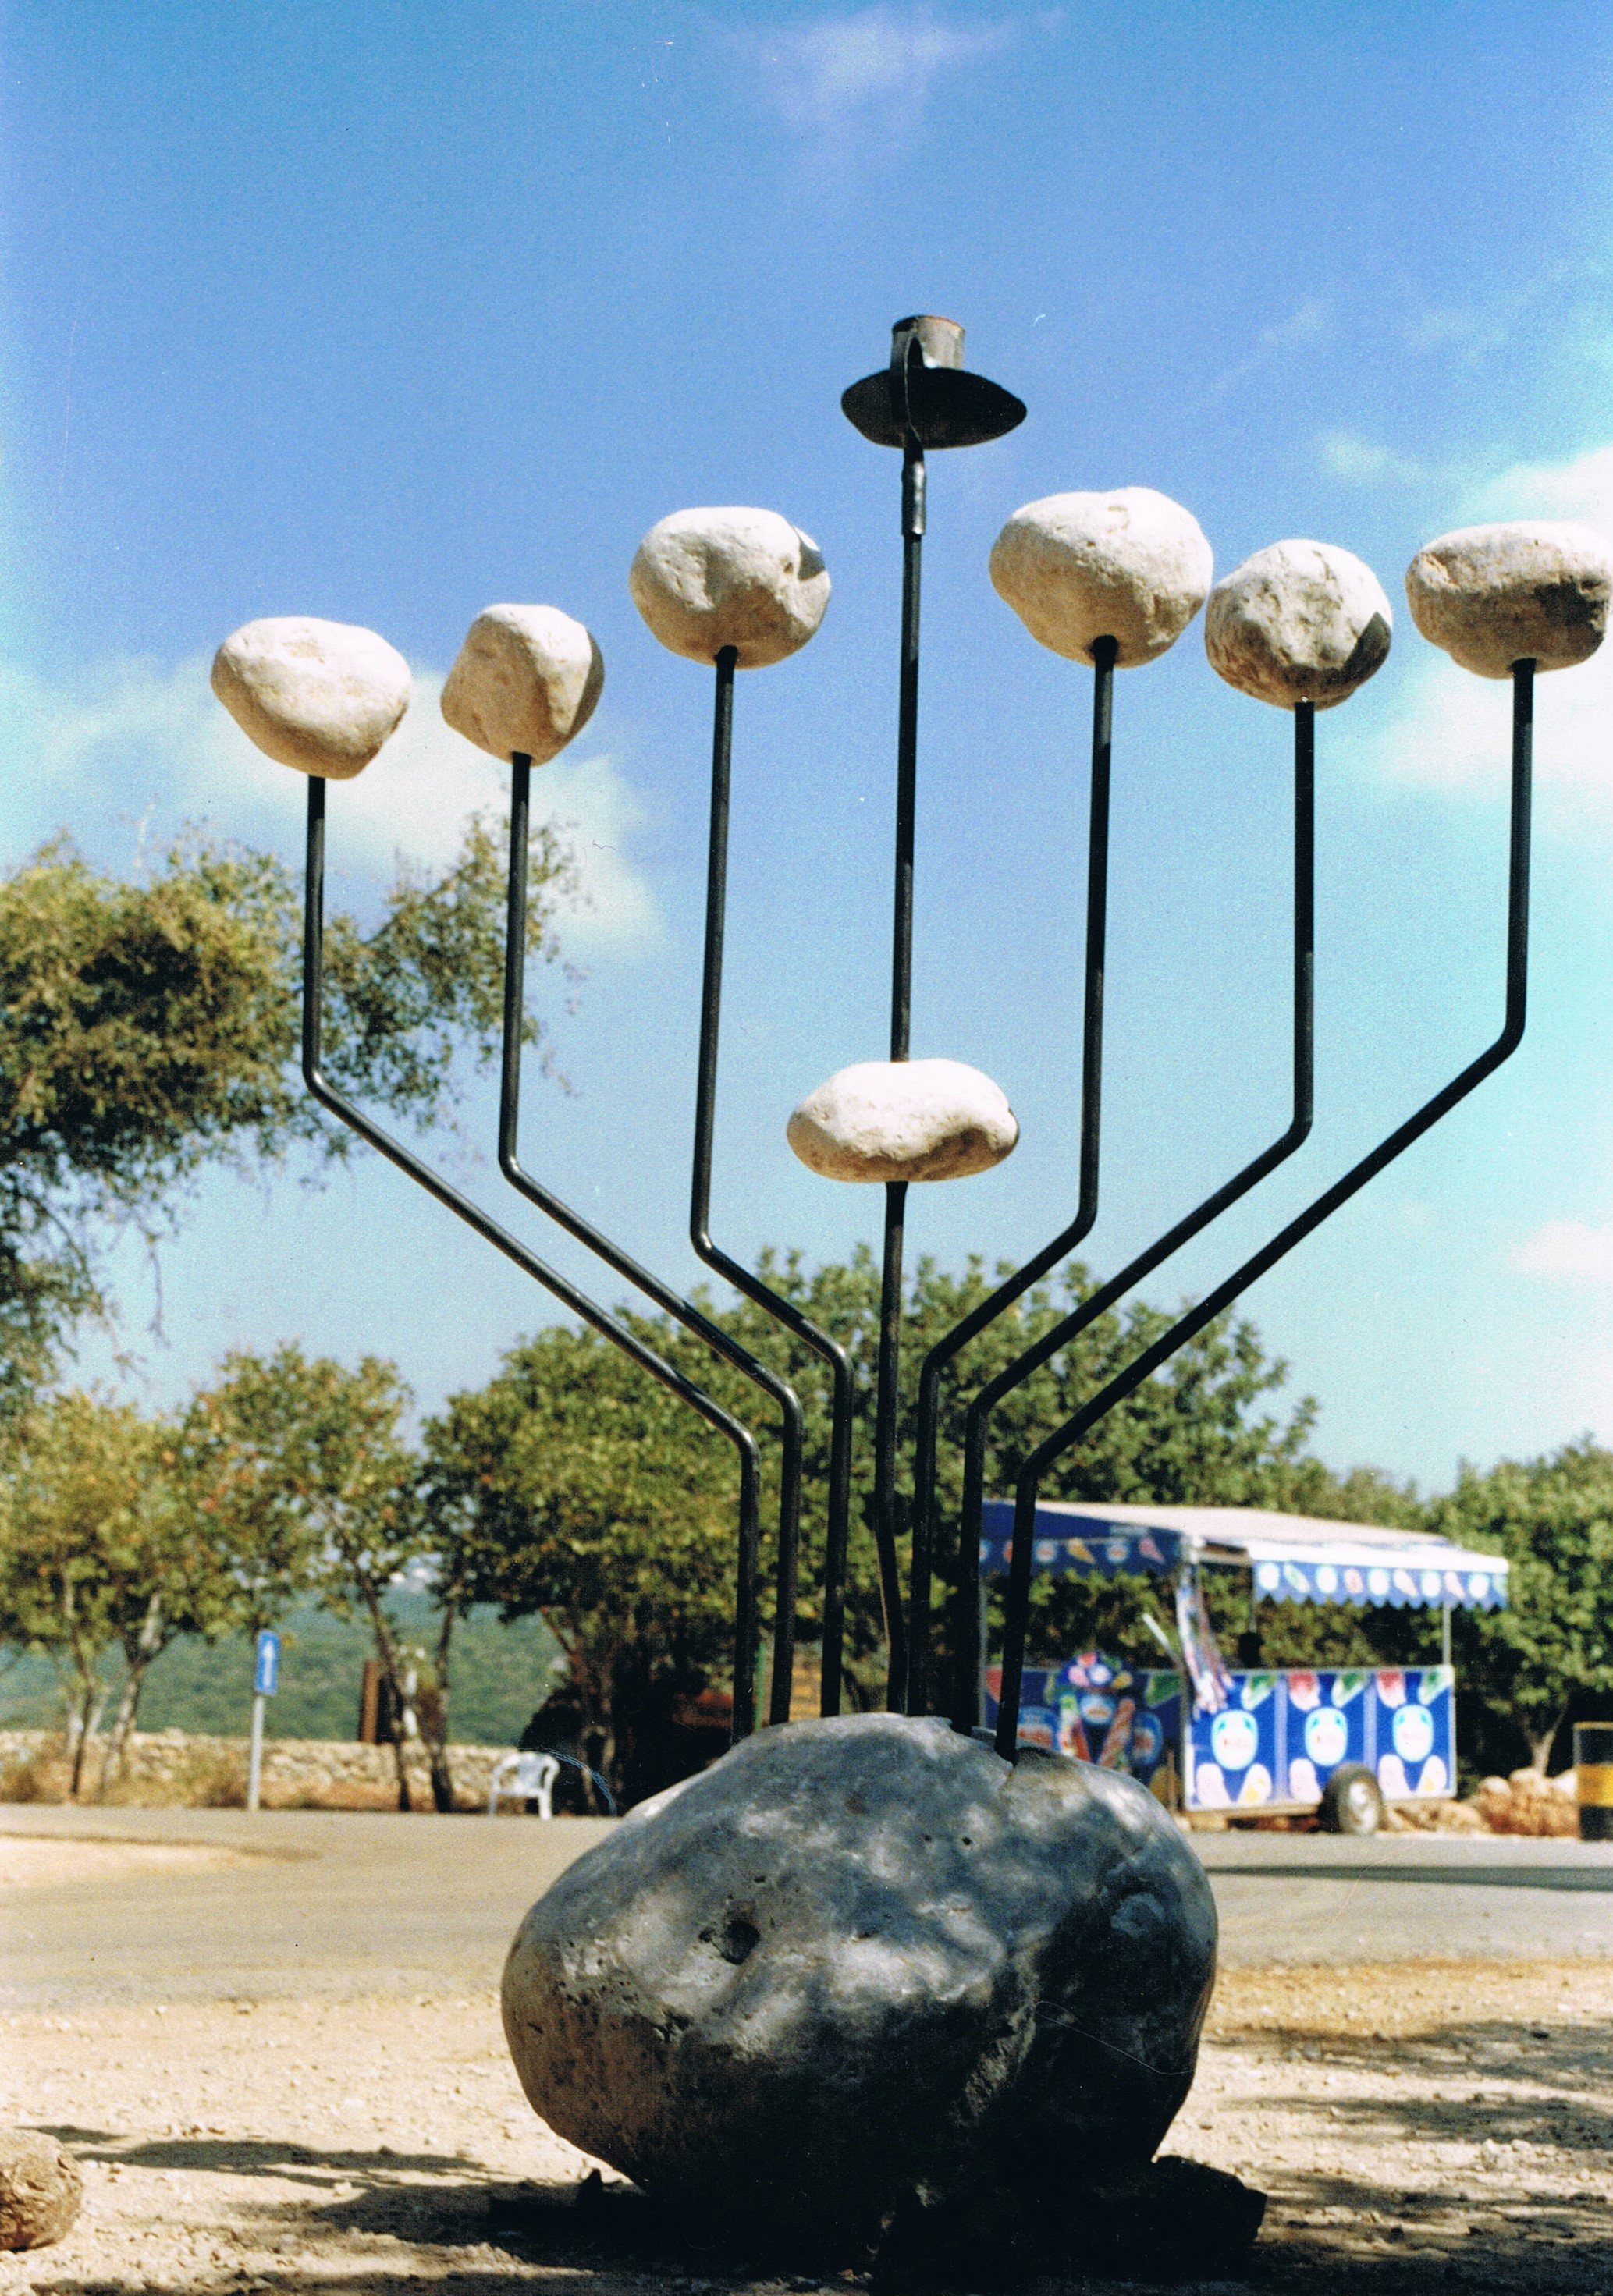 'Israel 50th Anniversary' - Large Menorah Crafted of Iron & River Stones